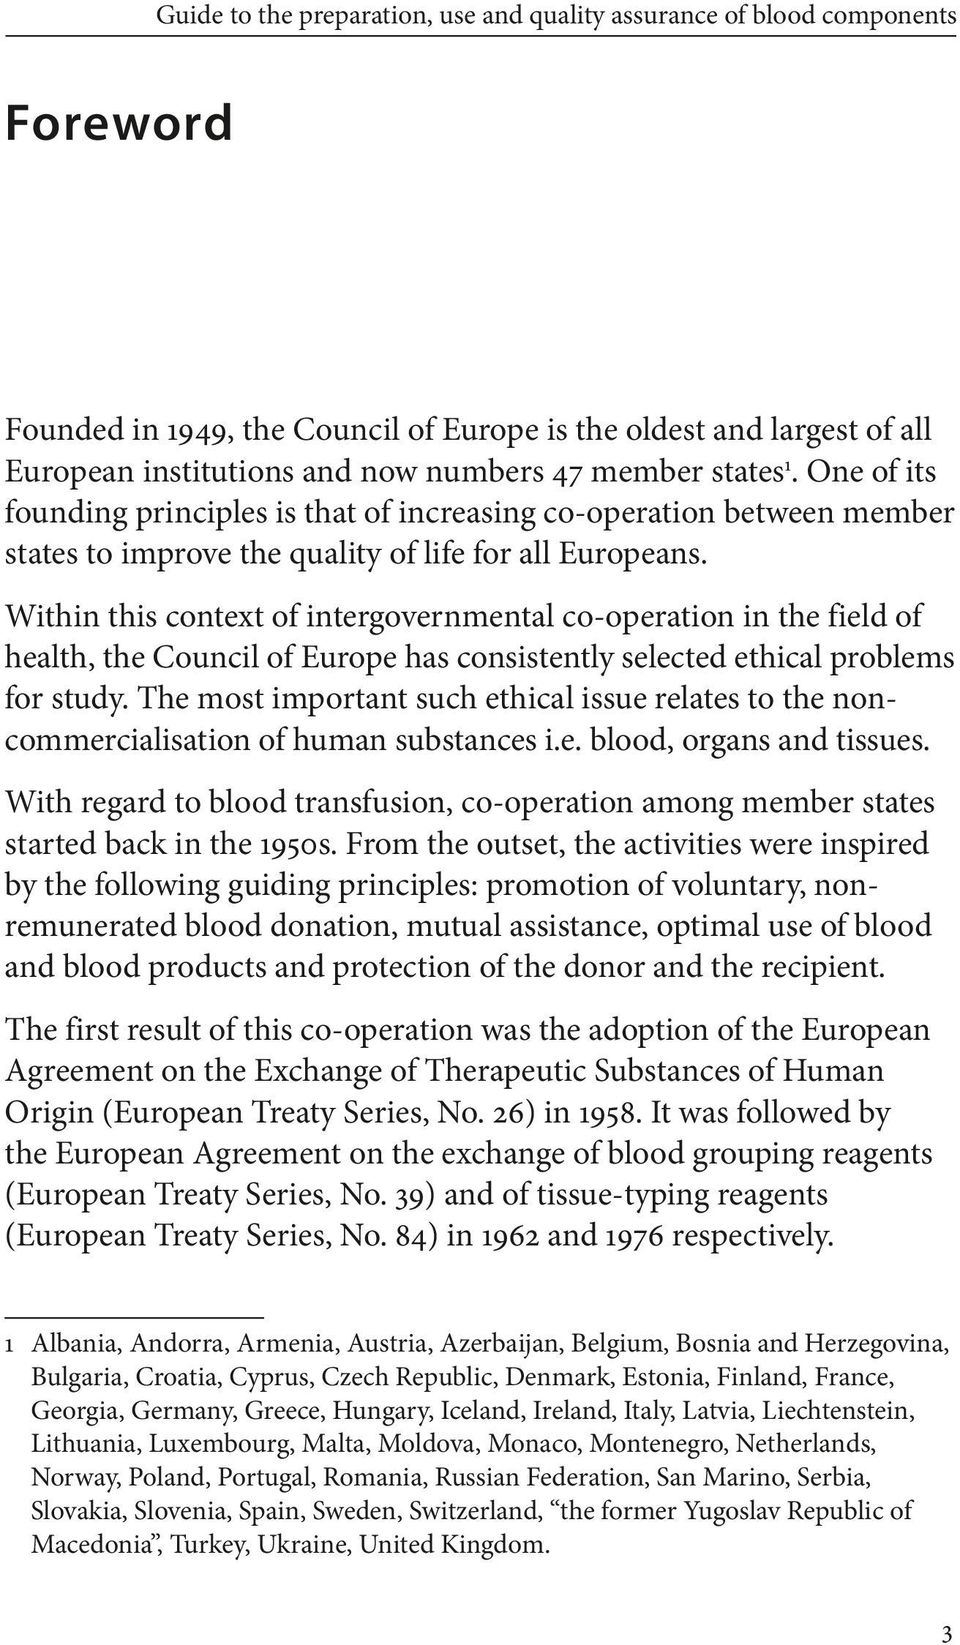 Within this context of intergovernmental co-operation in the field of health, the Council of Europe has consistently selected ethical problems for study.